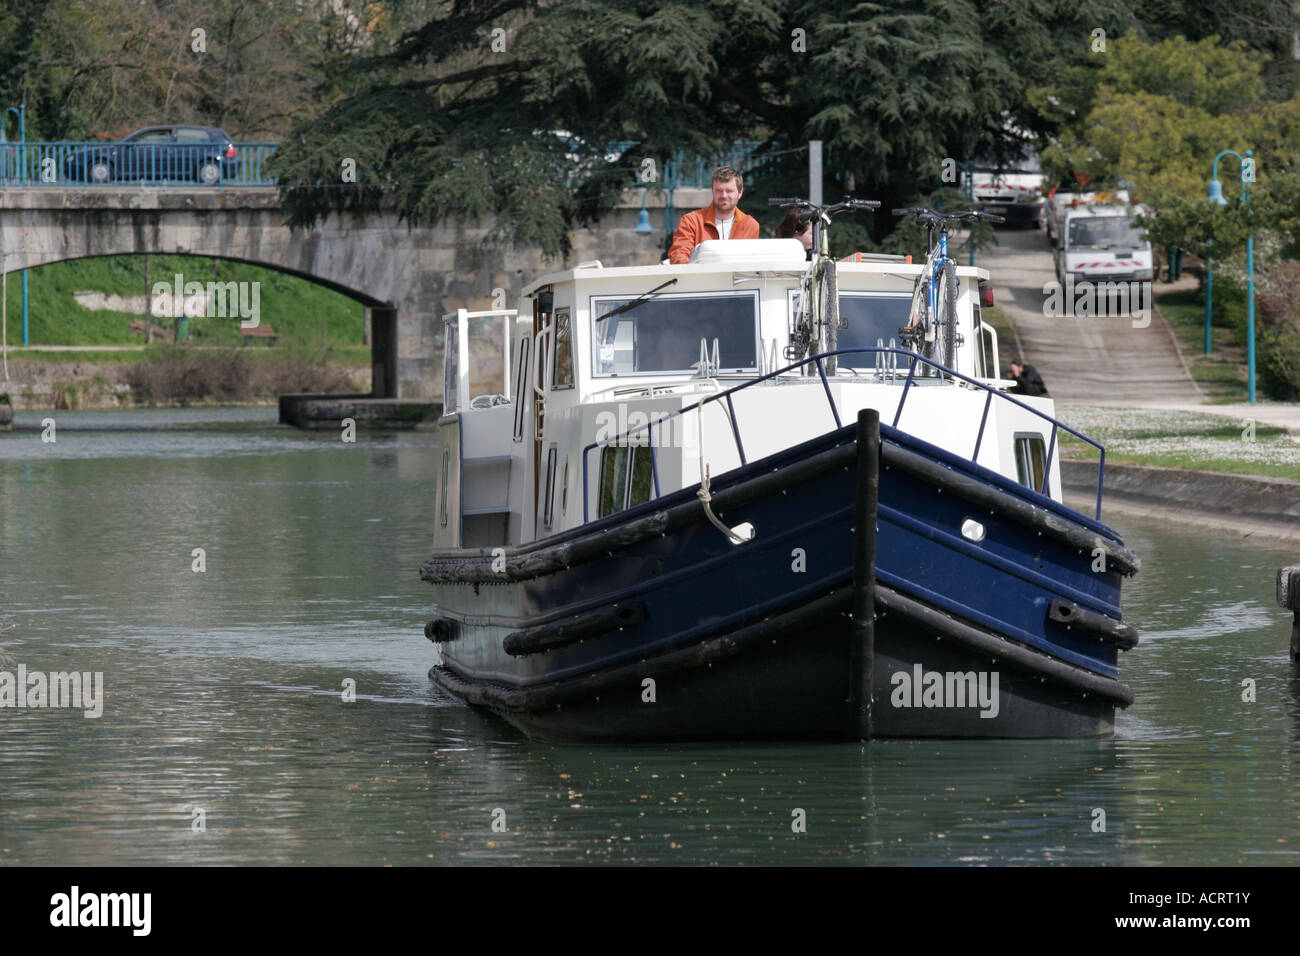 Holiday boat on the Lateral Canal Bridge at Agen, South West France - Stock Image